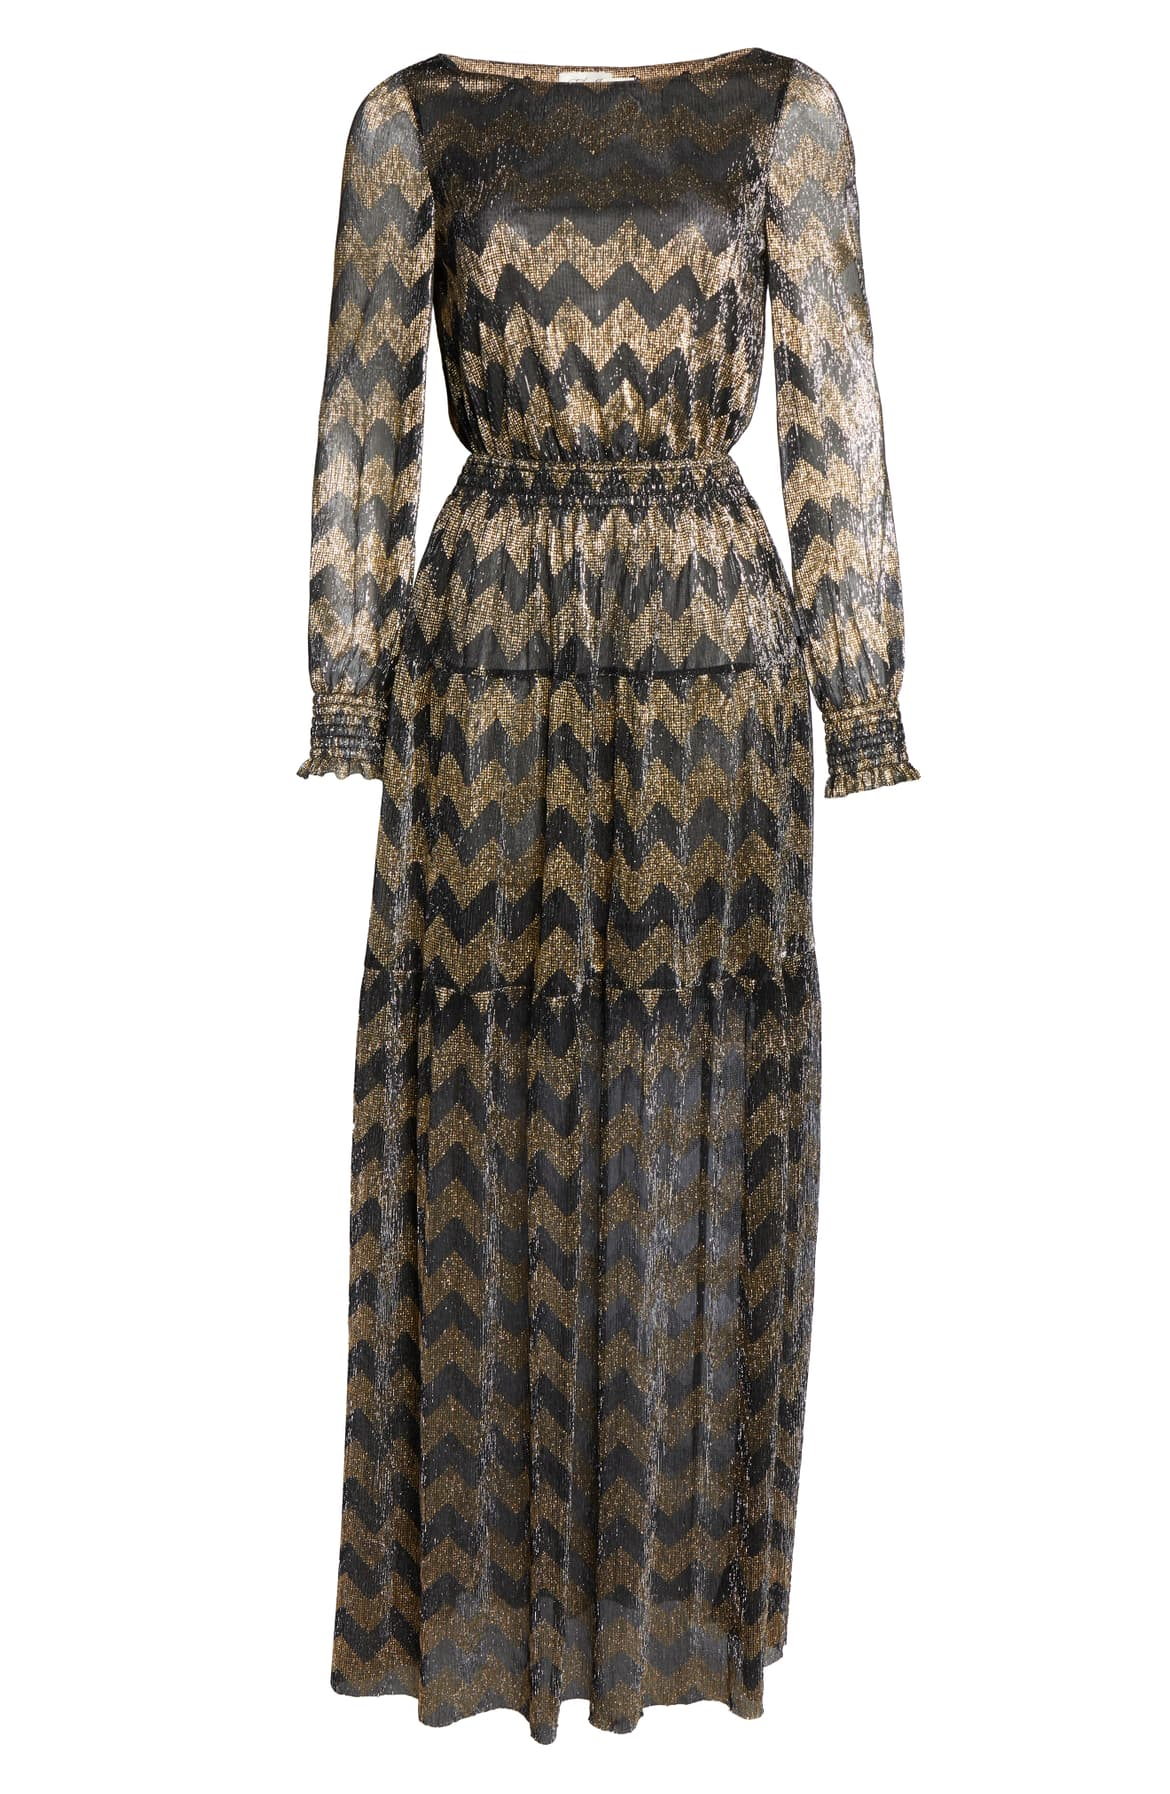 "<a  href=""https://shop.nordstrom.com/s/eliza-j-metallic-chevron-stripe-long-sleeve-maxi-dress/5405239/full?origin=keywordsearch-personalizedsort&breadcrumb=Home%2FAll%20Results&color=gold"" target=""_blank"" title=""https://shop.nordstrom.com/s/eliza-j-metallic-chevron-stripe-long-sleeve-maxi-dress/5405239/full?origin=keywordsearch-personalizedsort&breadcrumb=Home%2FAll%20Results&color=gold"">Eliza J Metallic Chevron Stripe Long Sleeve Maxi Dress - $188.</a>{&nbsp;}From cozy to gold hued to tailored, Nordstrom has the hottest trends for getting glam this holiday season! (Credit: Nordstrom)"